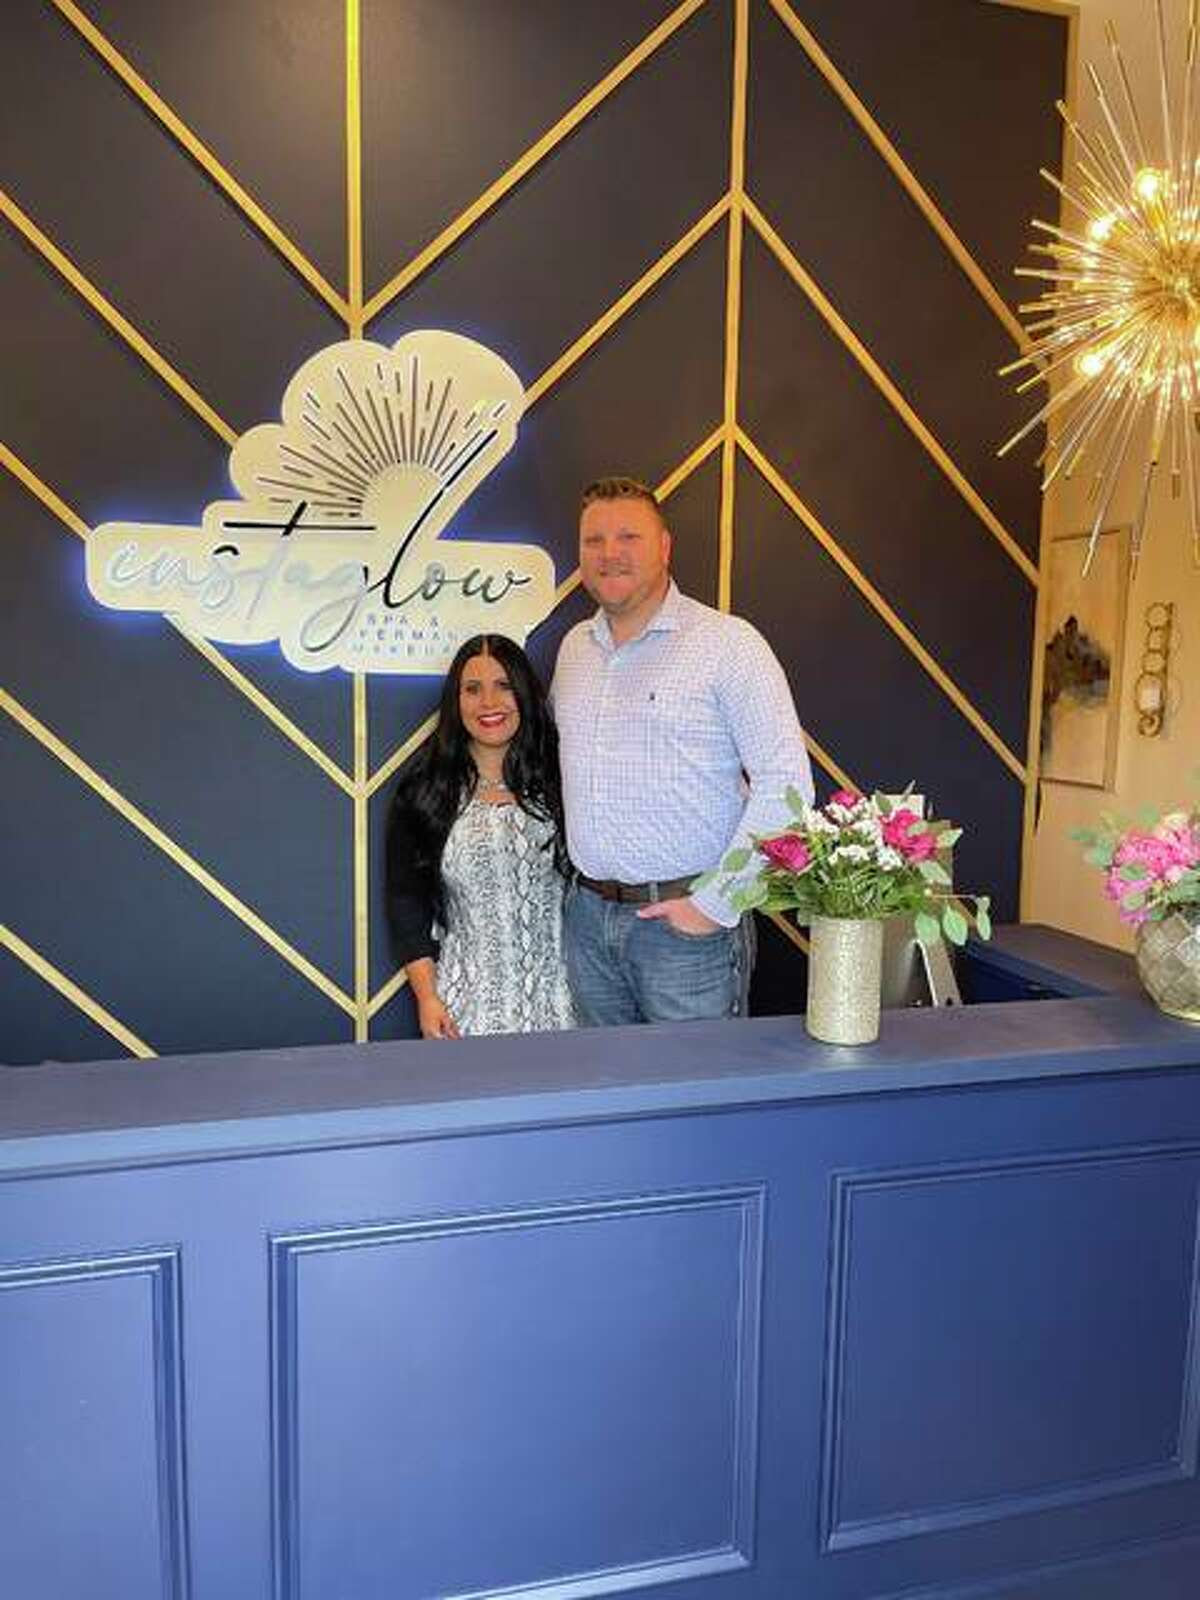 Lauren Strickland and her fiancée, Jay, at Instaglow Spa & Permanent Makeup